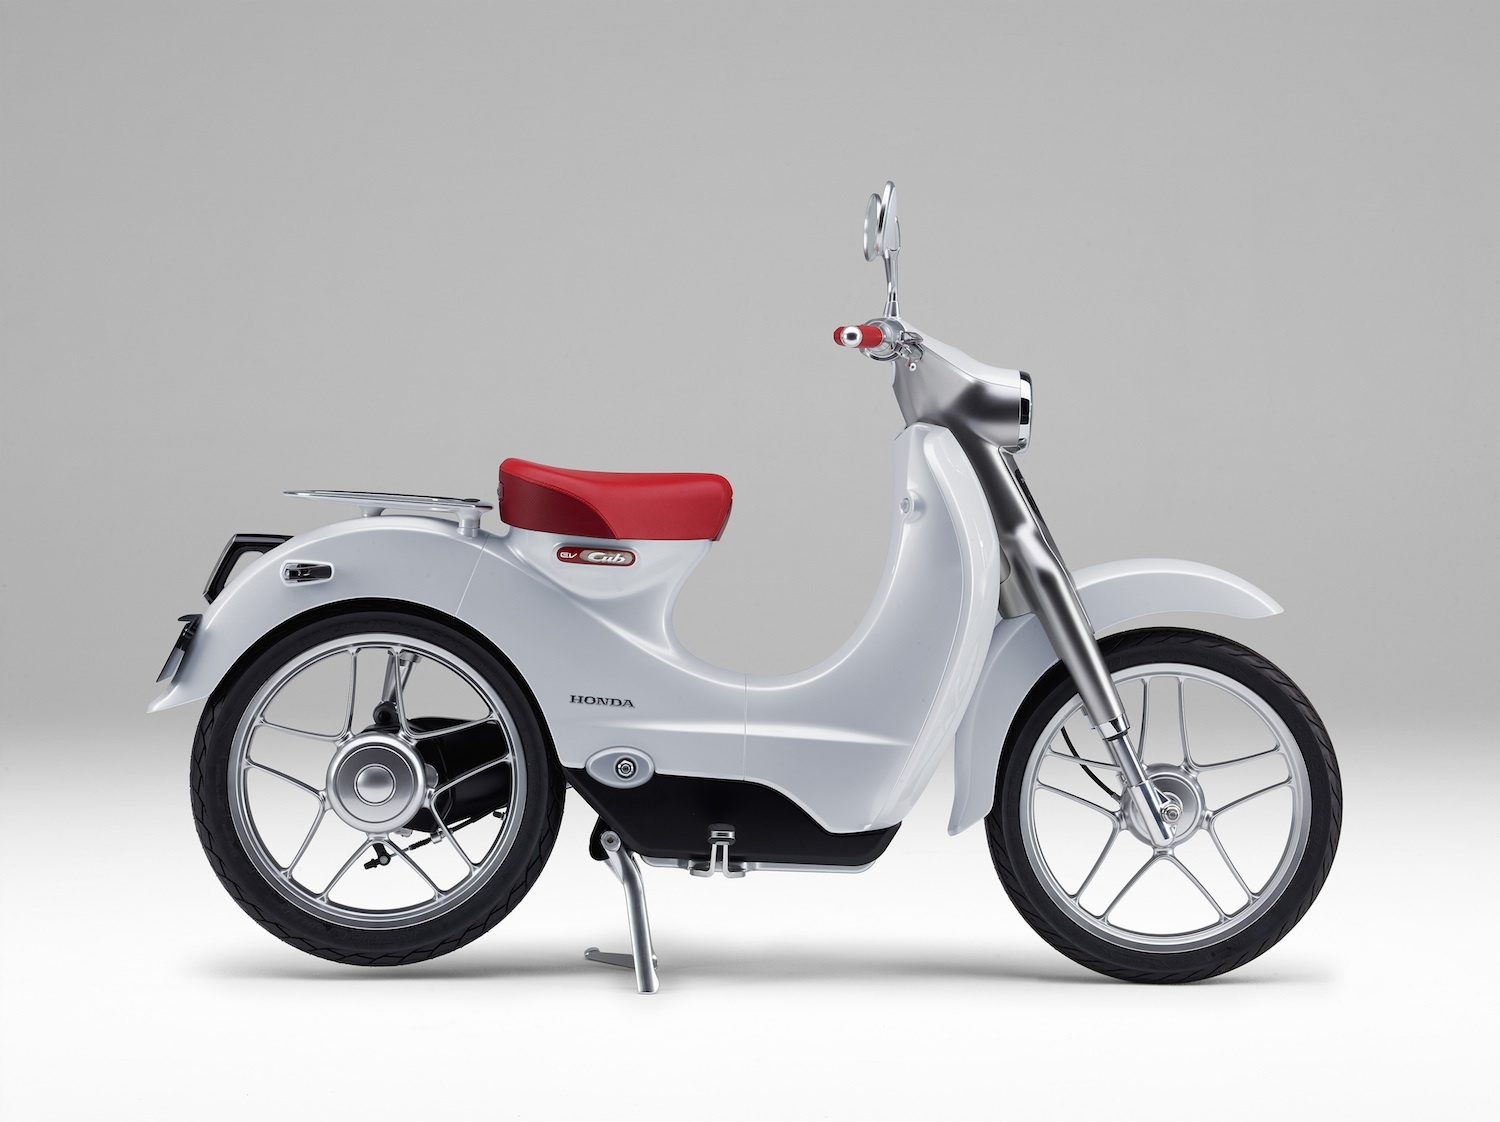 Honda EV-Cub Electric Scooter / Motorcycle Concept